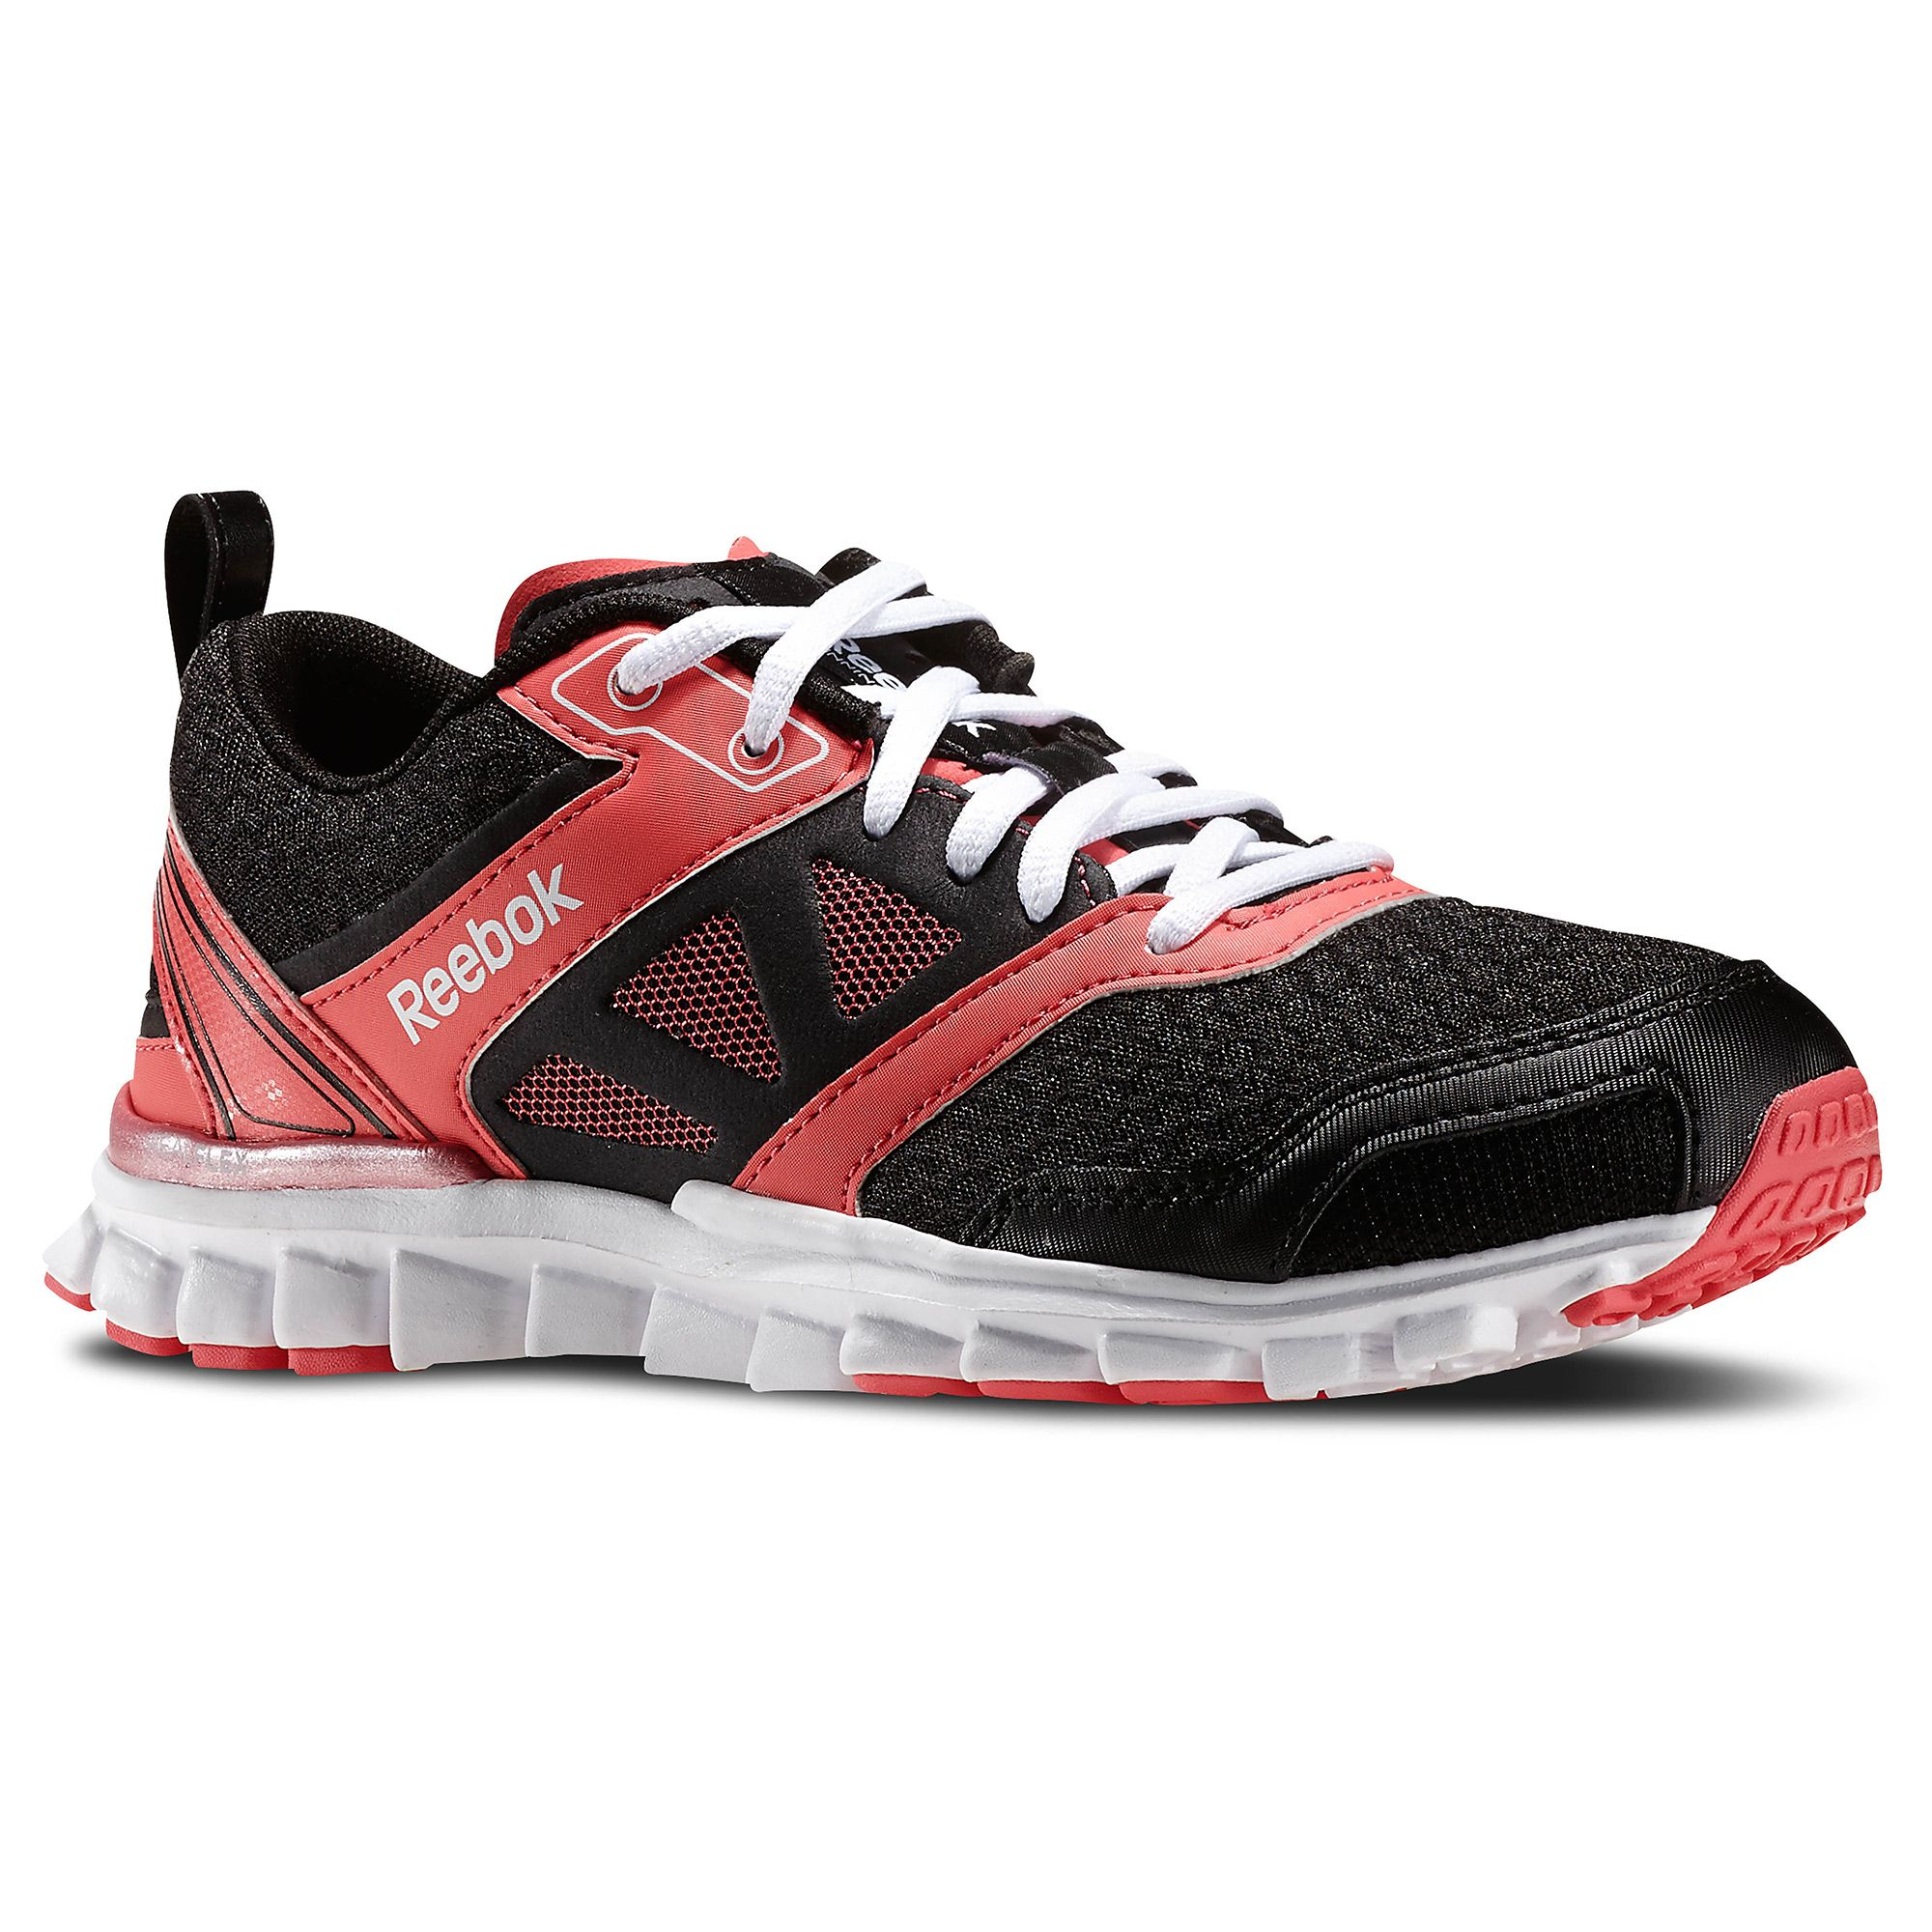 Reebok-running-shoes-and-sportsshoes-for-women (9)